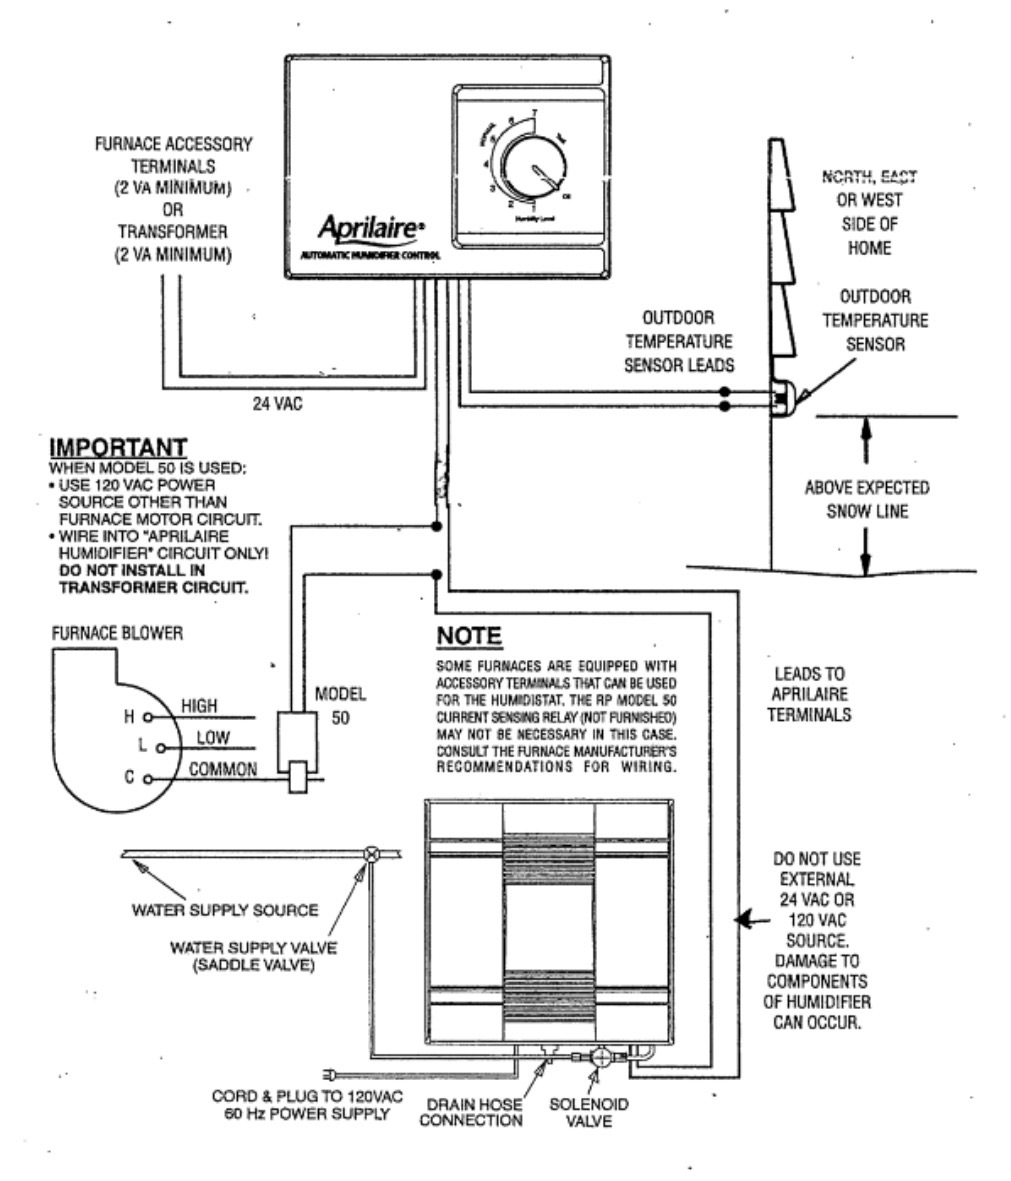 Honeywell Power Humidifier Wiring Diagram Collection. Honeywell Power Humidifier Wiring Diagram Collectiondiagram 10 Heating Aprilaire 700 To Download. Wiring. Honeywell Furnace Transformer Wiring Diagram At Scoala.co